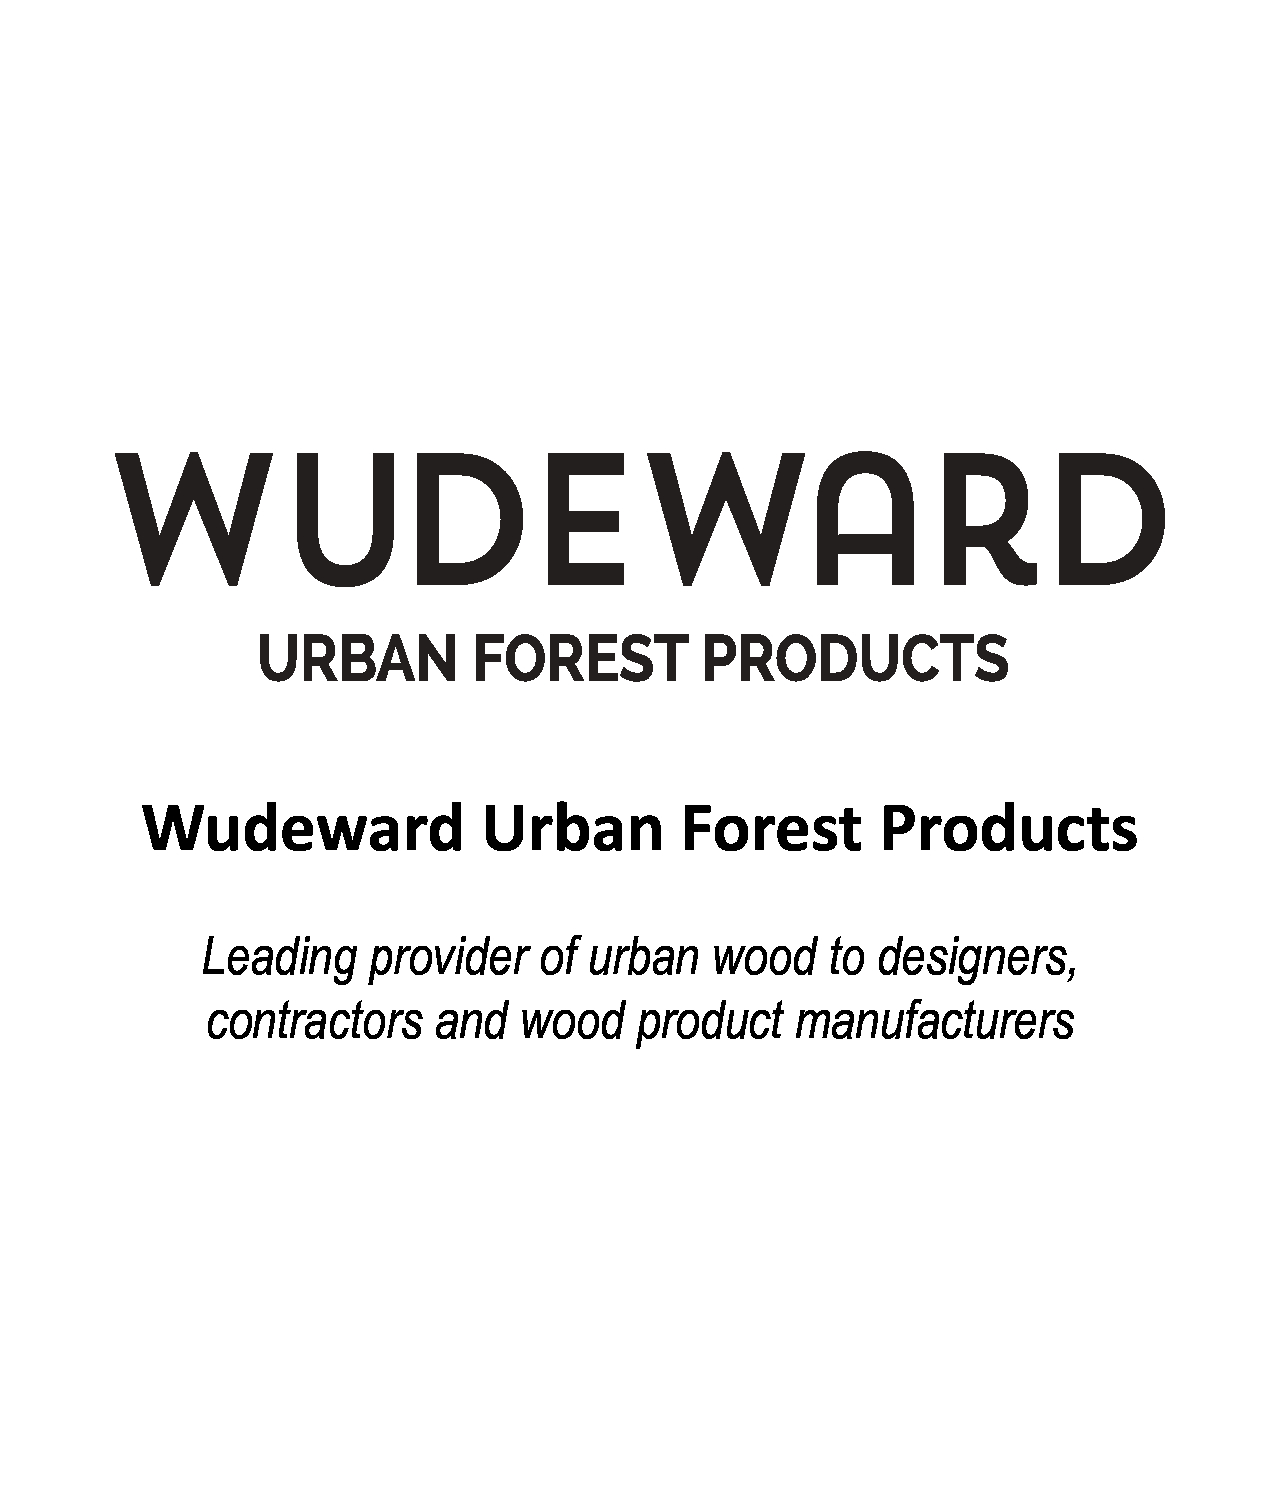 Wudeward Urban Forest Products